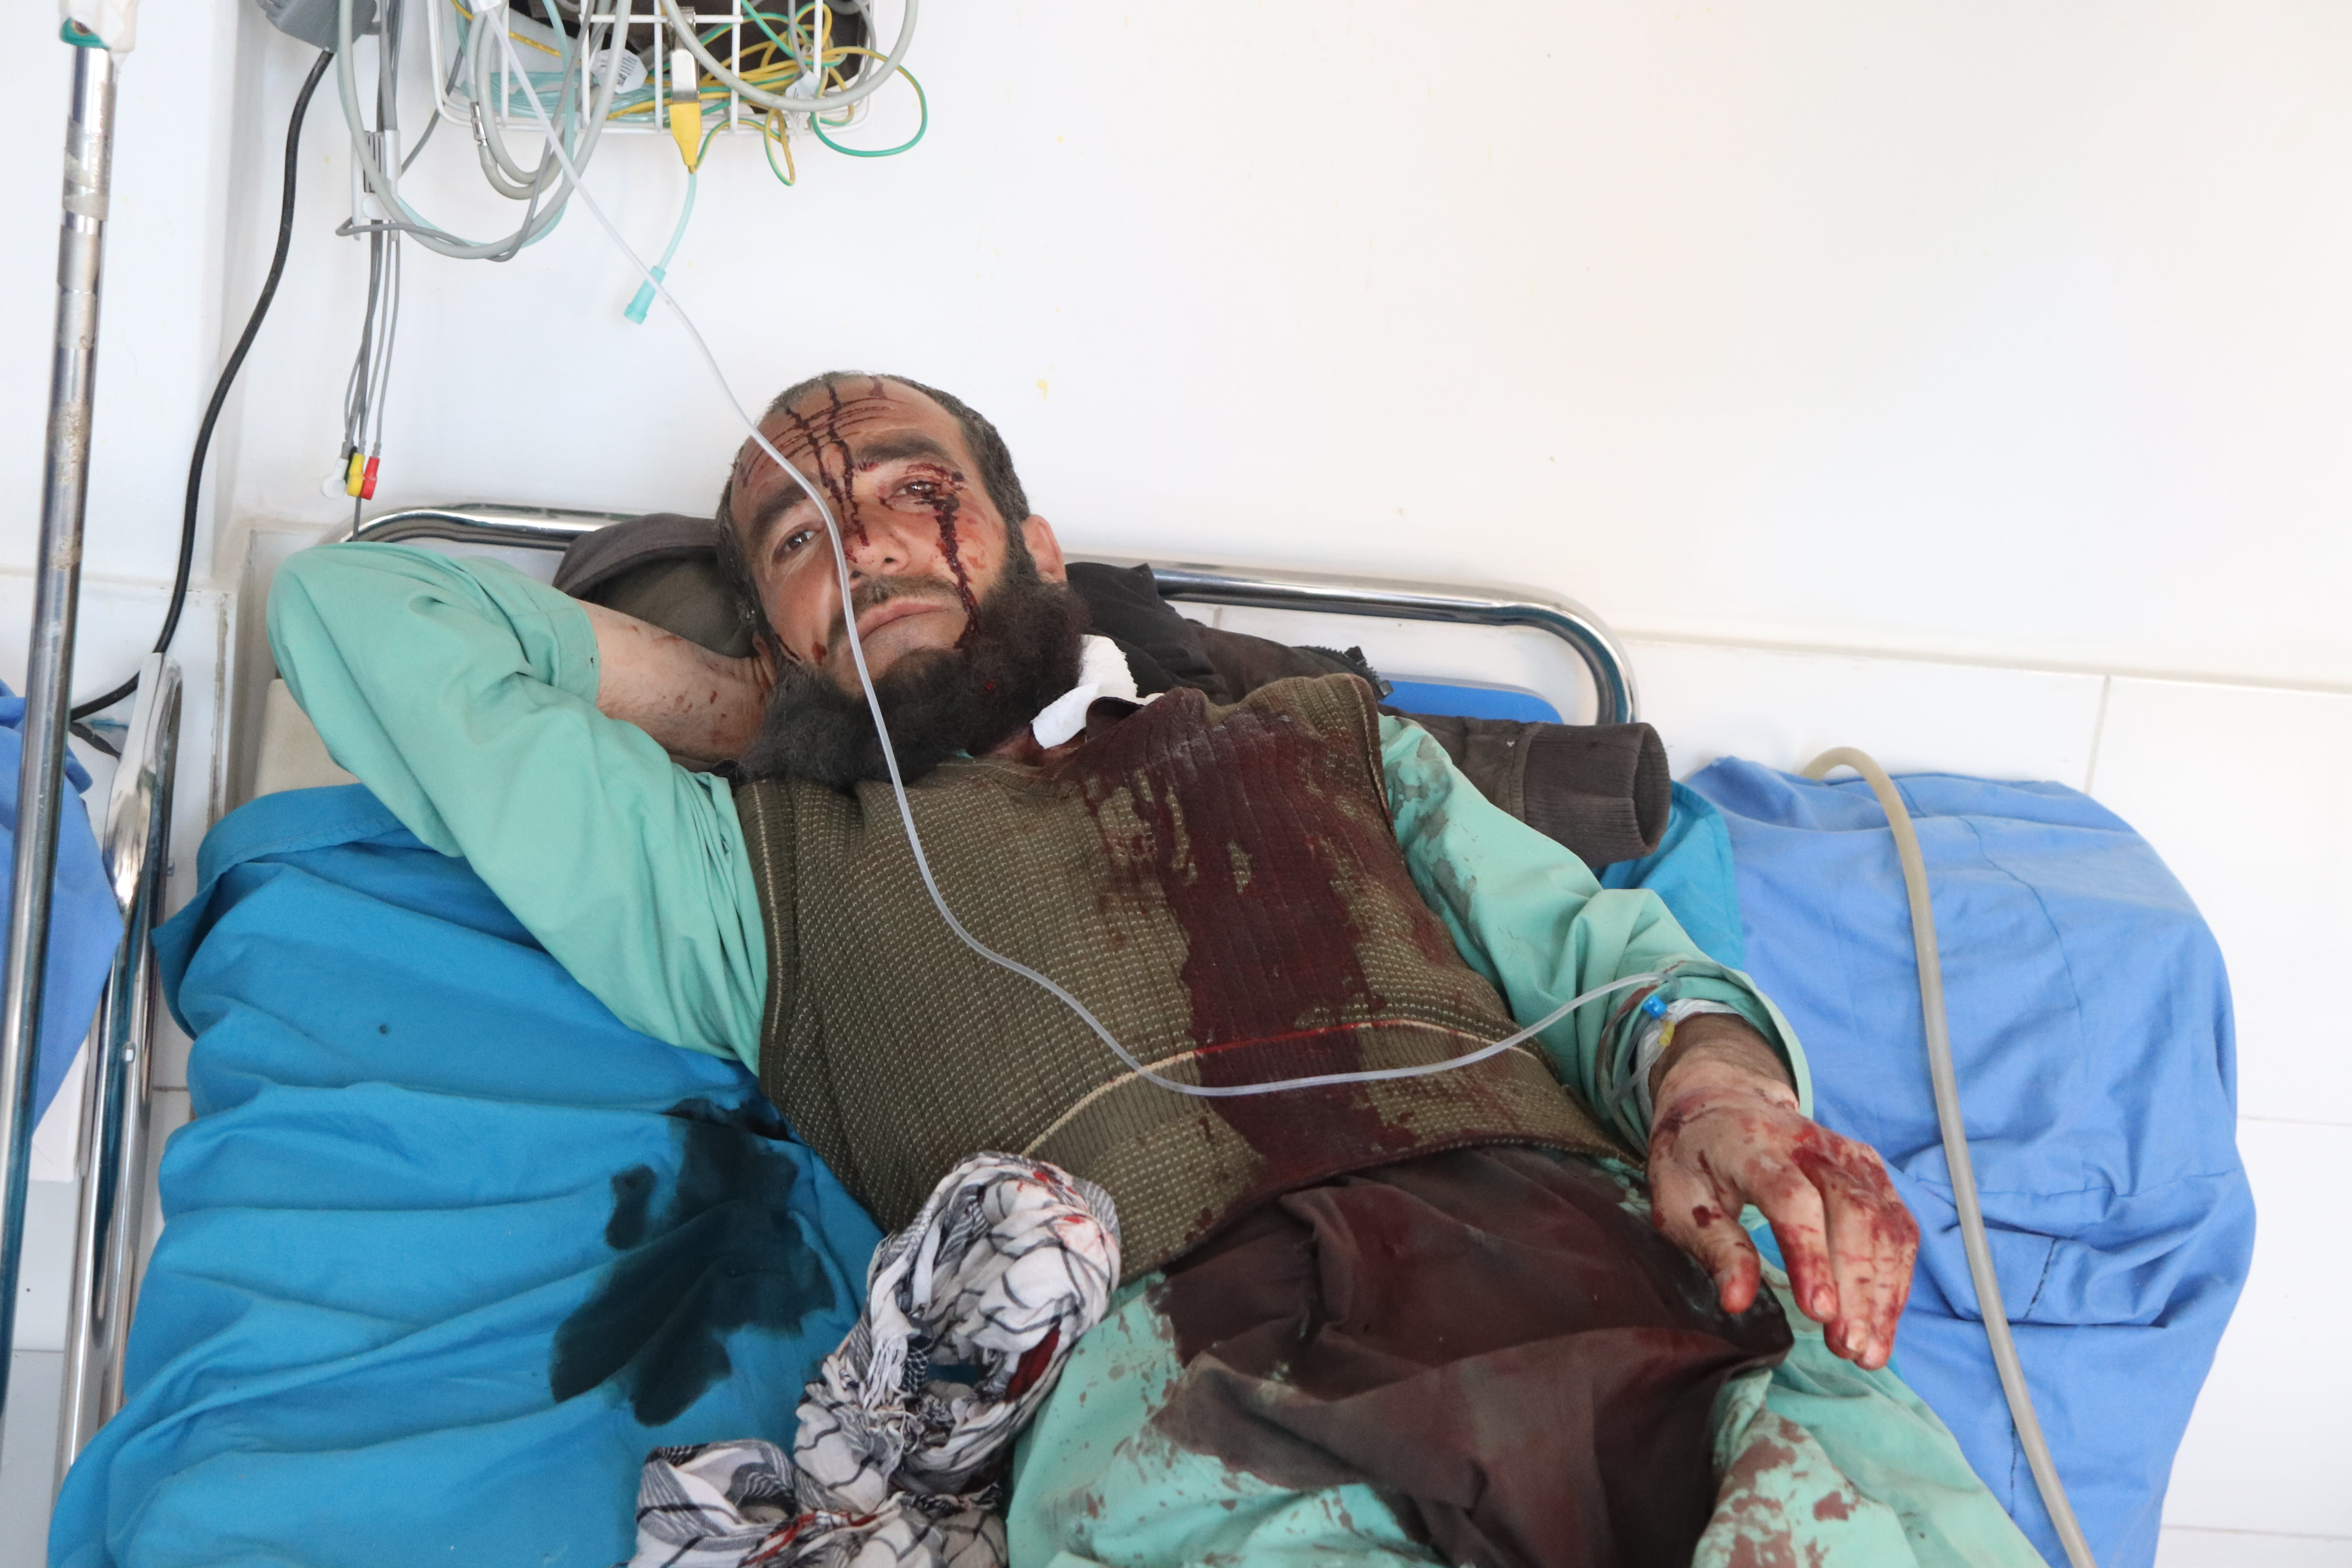 An Afghan receives a treatment at a hospital after a suicide car bombing in Ghor province western of Kabul, Afghanistan, Sunday, Oct. 18. 2020. A suicide car bombing on Sunday killed at least 1a dozen people and wounded more than 100 others in Afghanistan is western Ghor province officials said. (AP Photo)